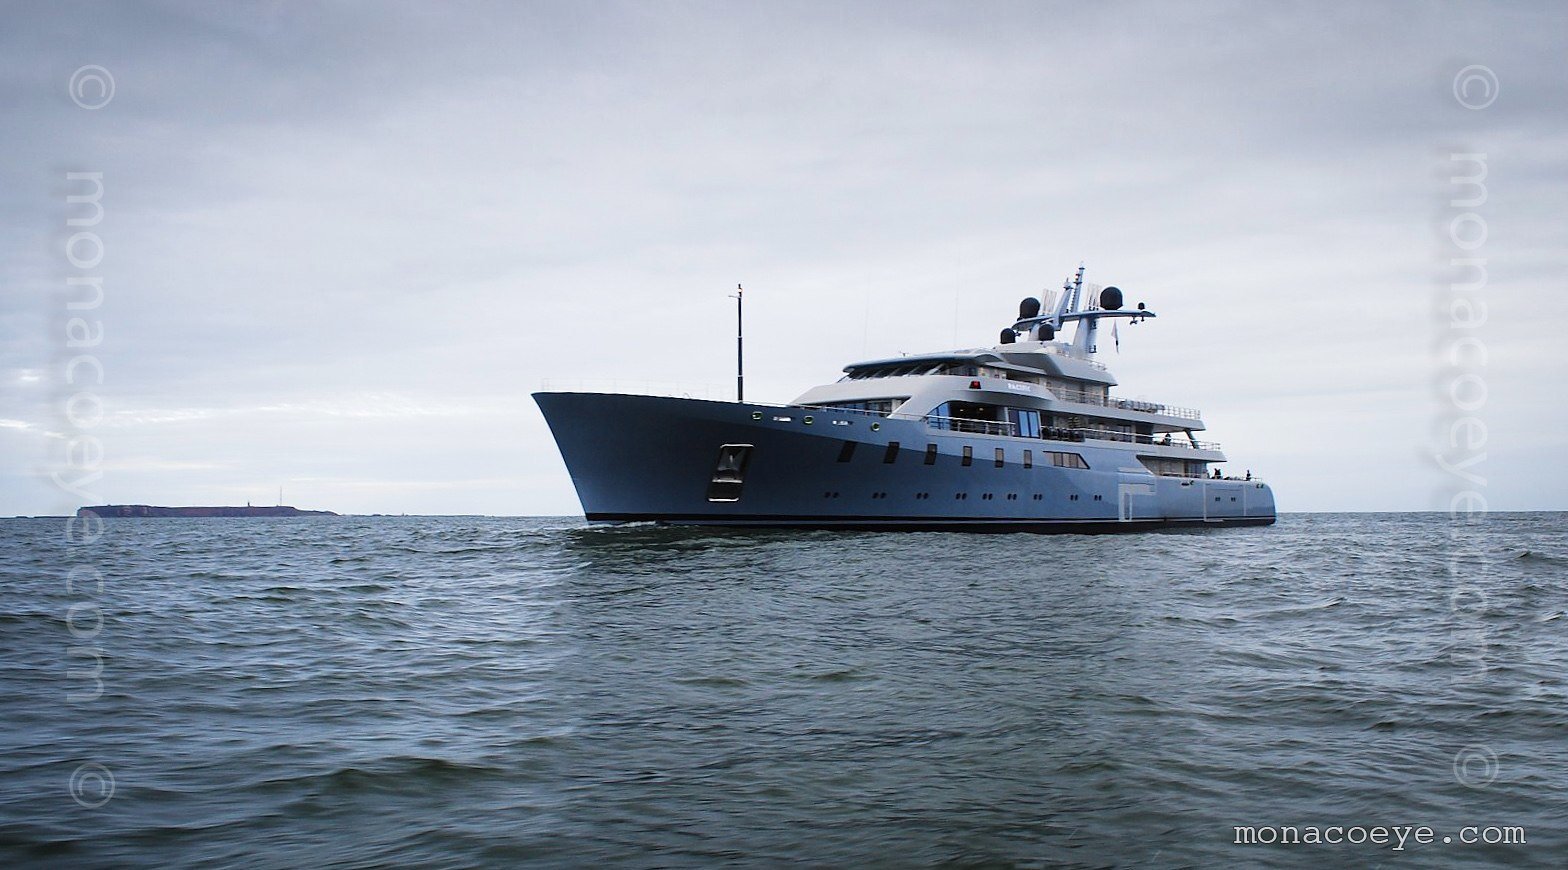 Pacific, built by Lurssen, designed by German Frers, 2010, 85 metres